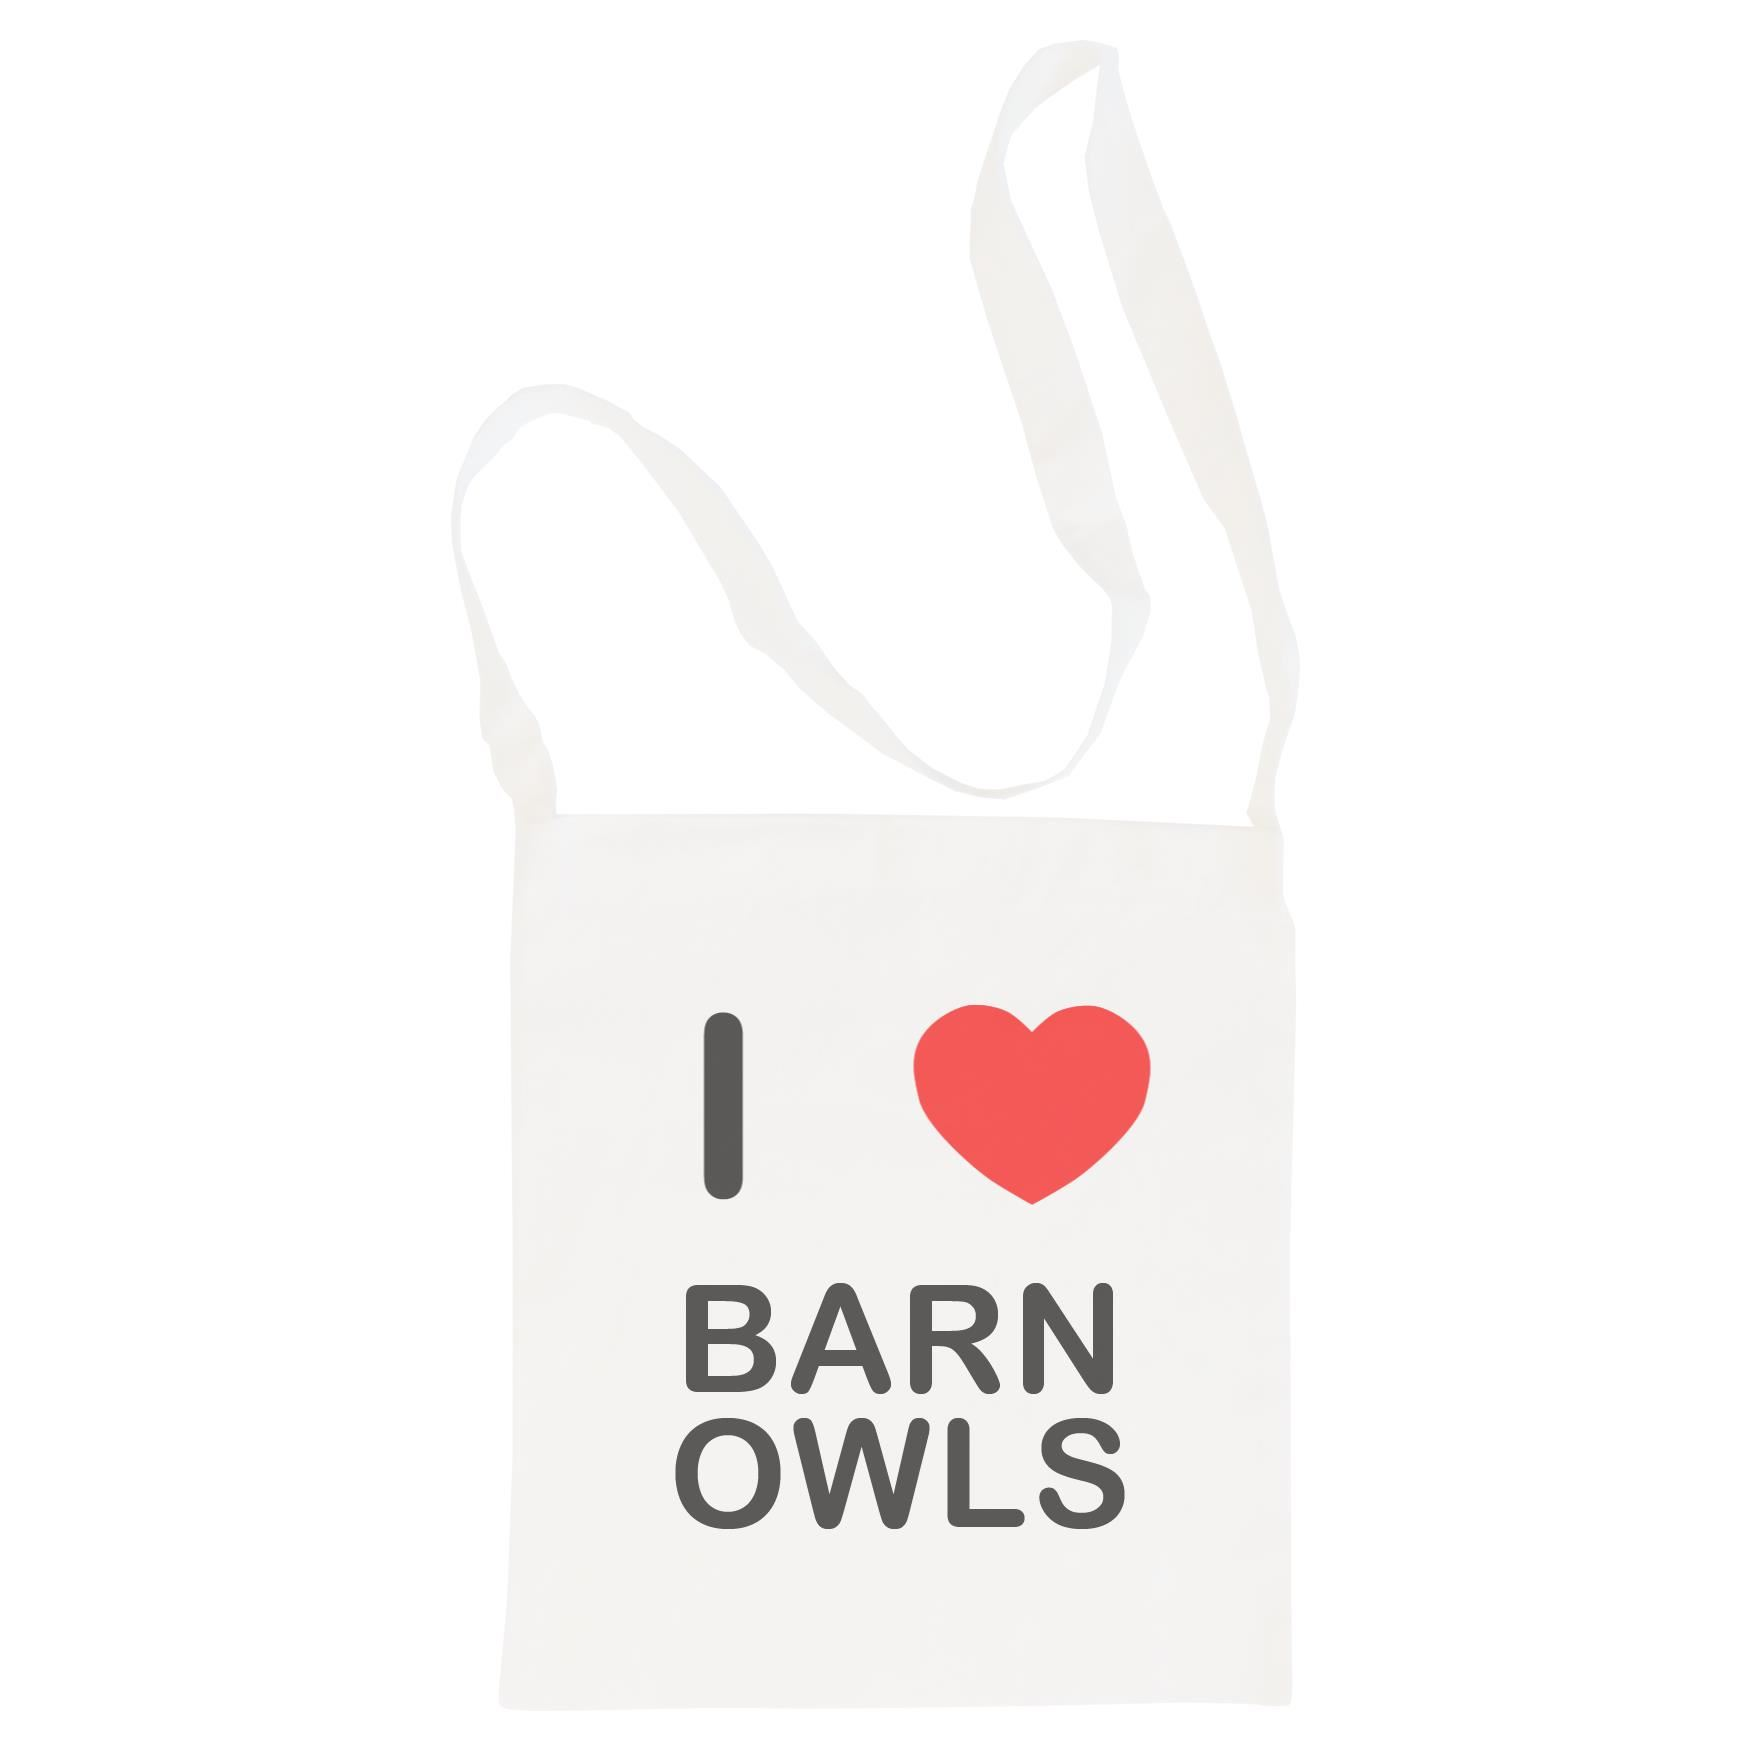 I Love Barn Owls - Cotton Bag | Size choice Tote, Shopper or Sling